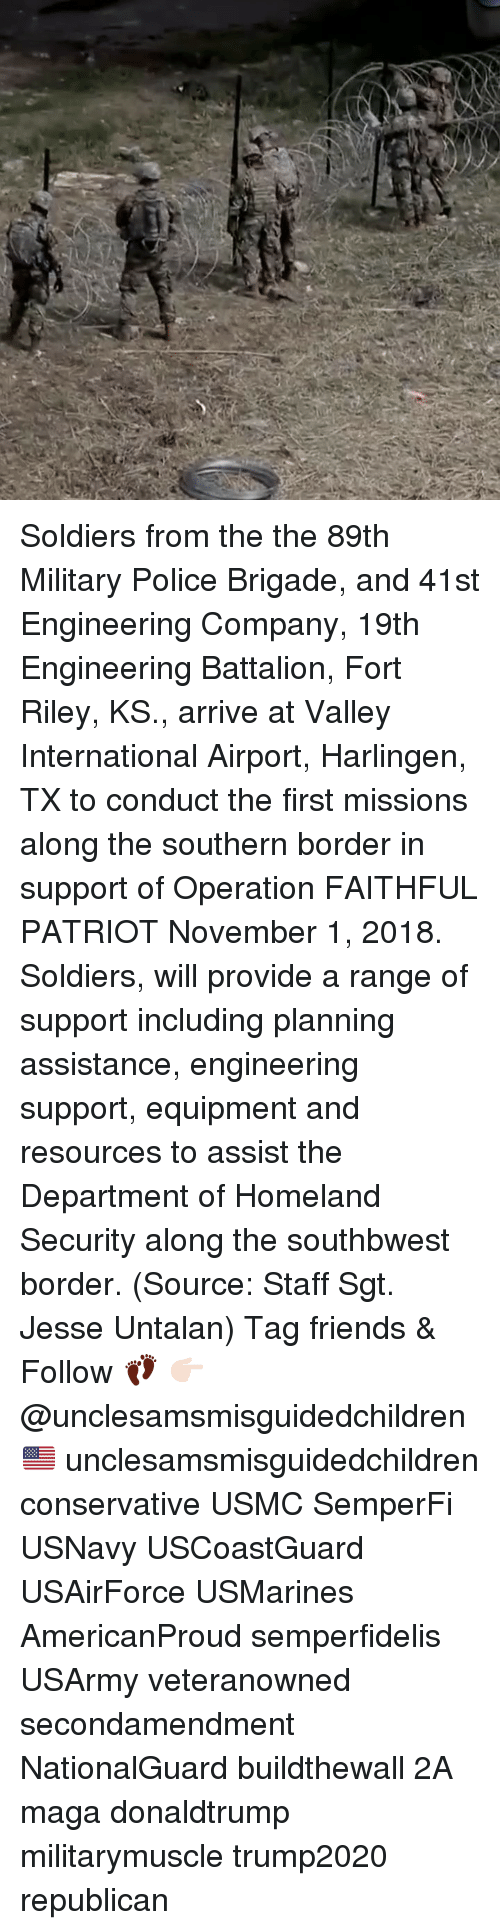 battalion: Soldiers from the the 89th Military Police Brigade, and 41st Engineering Company, 19th Engineering Battalion, Fort Riley, KS., arrive at Valley International Airport, Harlingen, TX to conduct the first missions along the southern border in support of Operation FAITHFUL PATRIOT November 1, 2018. Soldiers, will provide a range of support including planning assistance, engineering support, equipment and resources to assist the Department of Homeland Security along the southbwest border. (Source: Staff Sgt. Jesse Untalan) Tag friends & Follow 👣 👉🏻 @unclesamsmisguidedchildren 🇺🇸 unclesamsmisguidedchildren conservative USMC SemperFi USNavy USCoastGuard USAirForce USMarines AmericanProud semperfidelis USArmy veteranowned secondamendment NationalGuard buildthewall 2A maga donaldtrump militarymuscle trump2020 republican